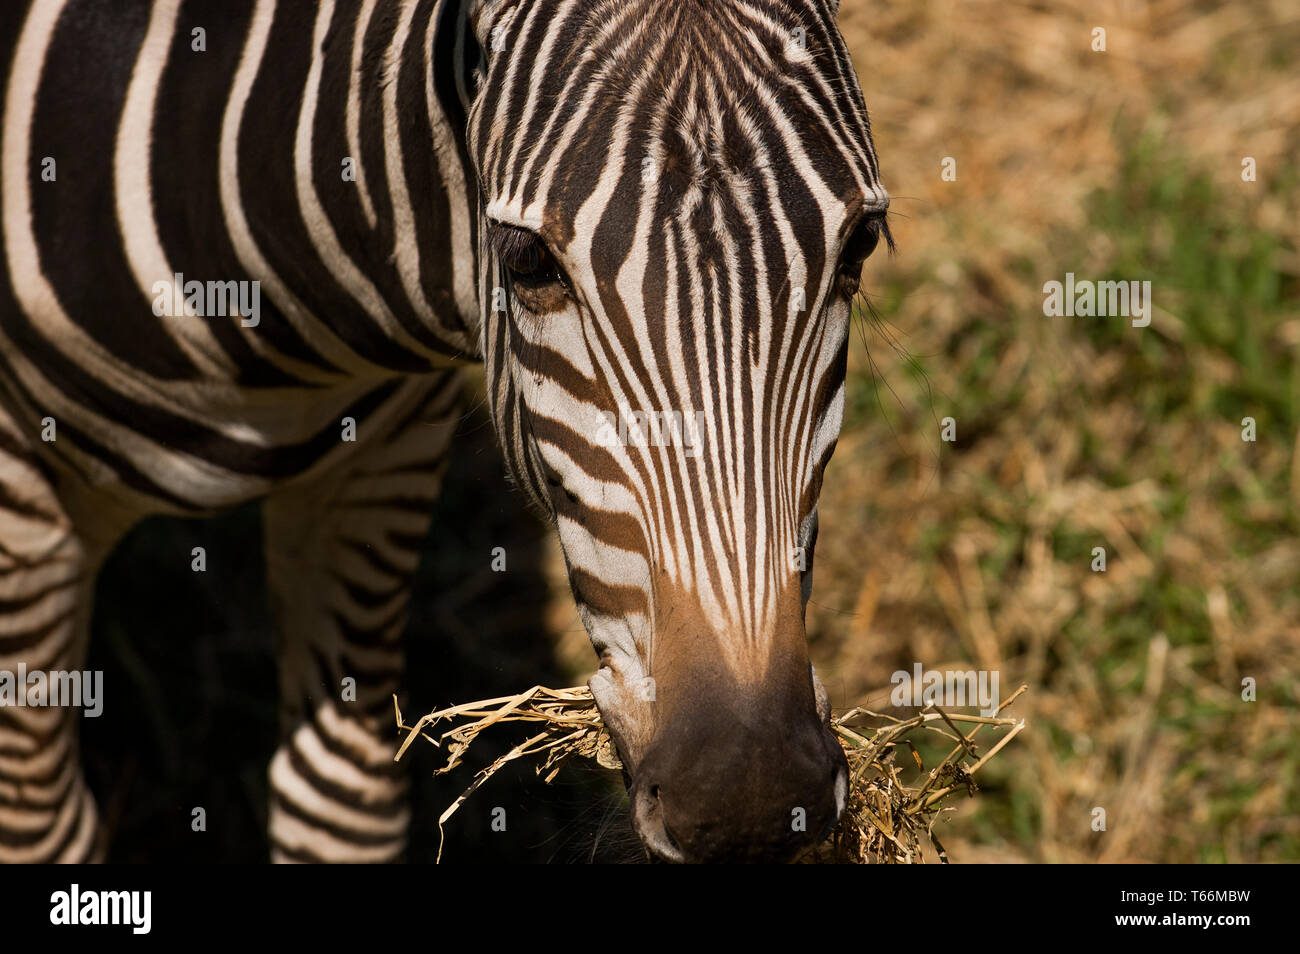 Zebra grazing at Taronga Western Plains Zoo, Dubbo, New South Wales, Australia Stock Photo